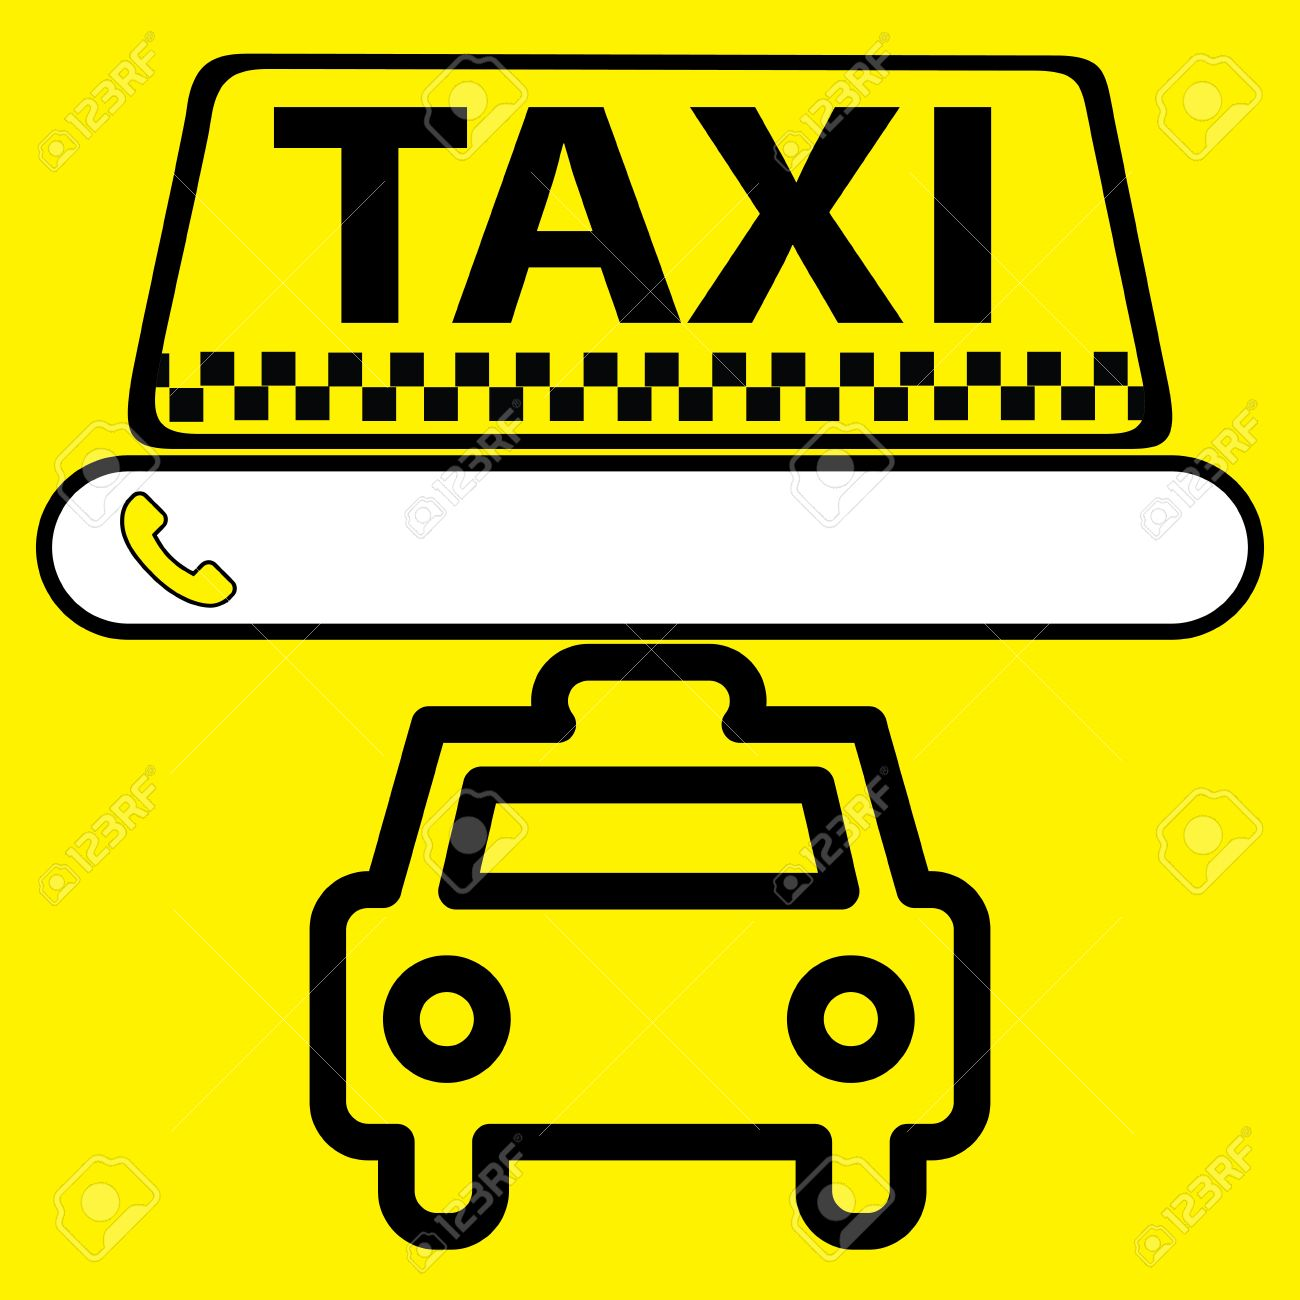 sticker, logo or icon Taxi service with space for a phone number